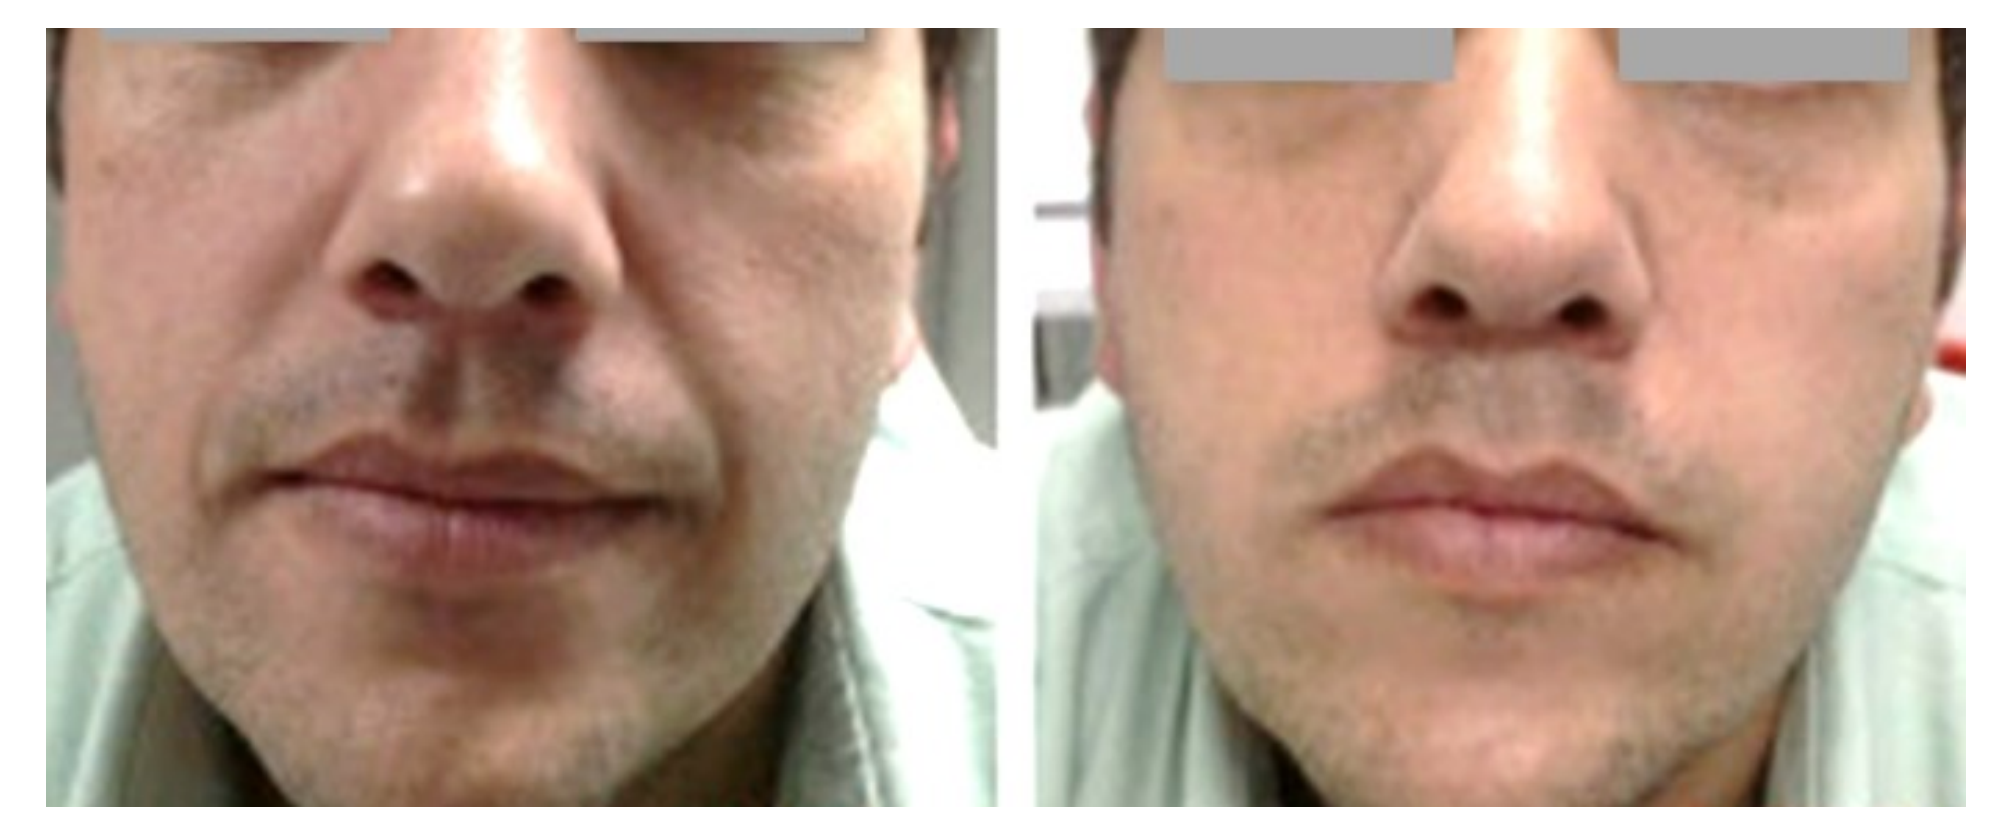 Fotona 4D  ntraoral treatment of perioral wrinkles with Er:YAG in non-ablative mode resulting in a significant diminishing of the nasolabial furrow. Pictures were taken before (left) and immediately after (right) the treatment.  Courtesty of: Adrian Gaspar, Gustavo Alfaro Gasti  Intraoral 2940 nm Er:YAG SMOOTH Mode